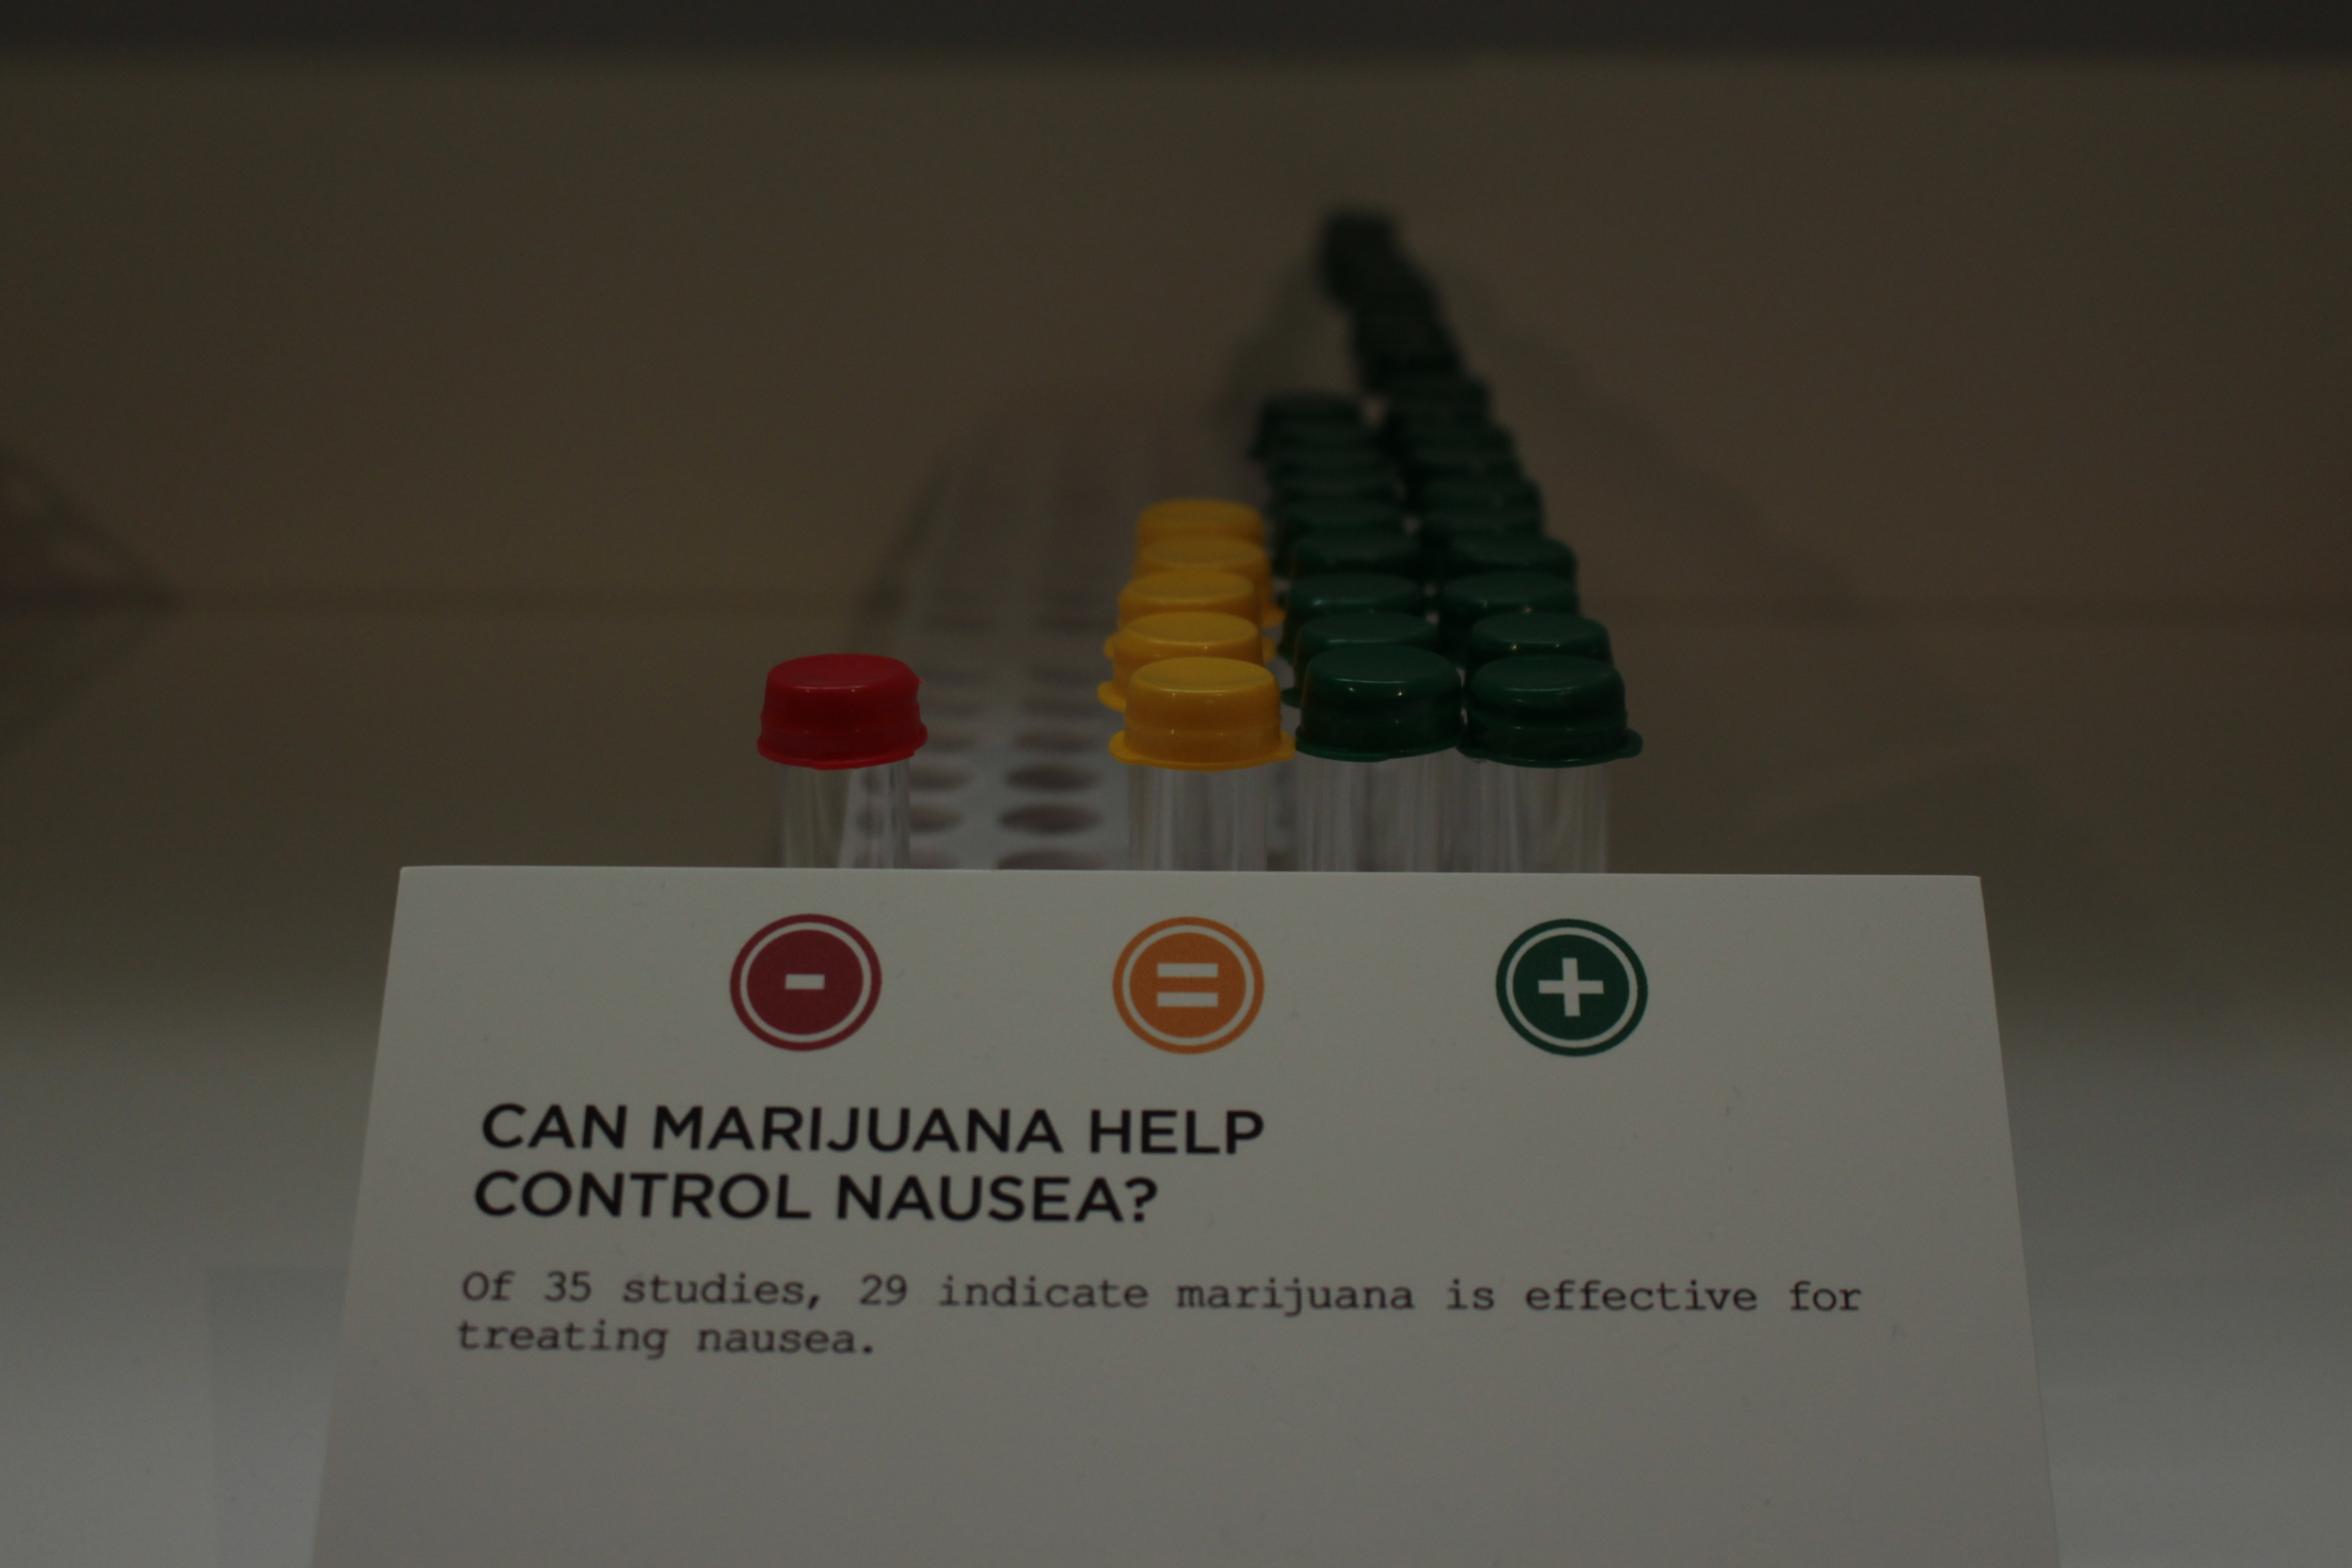 Can marijuana help control nausea studies at oakland museum of california